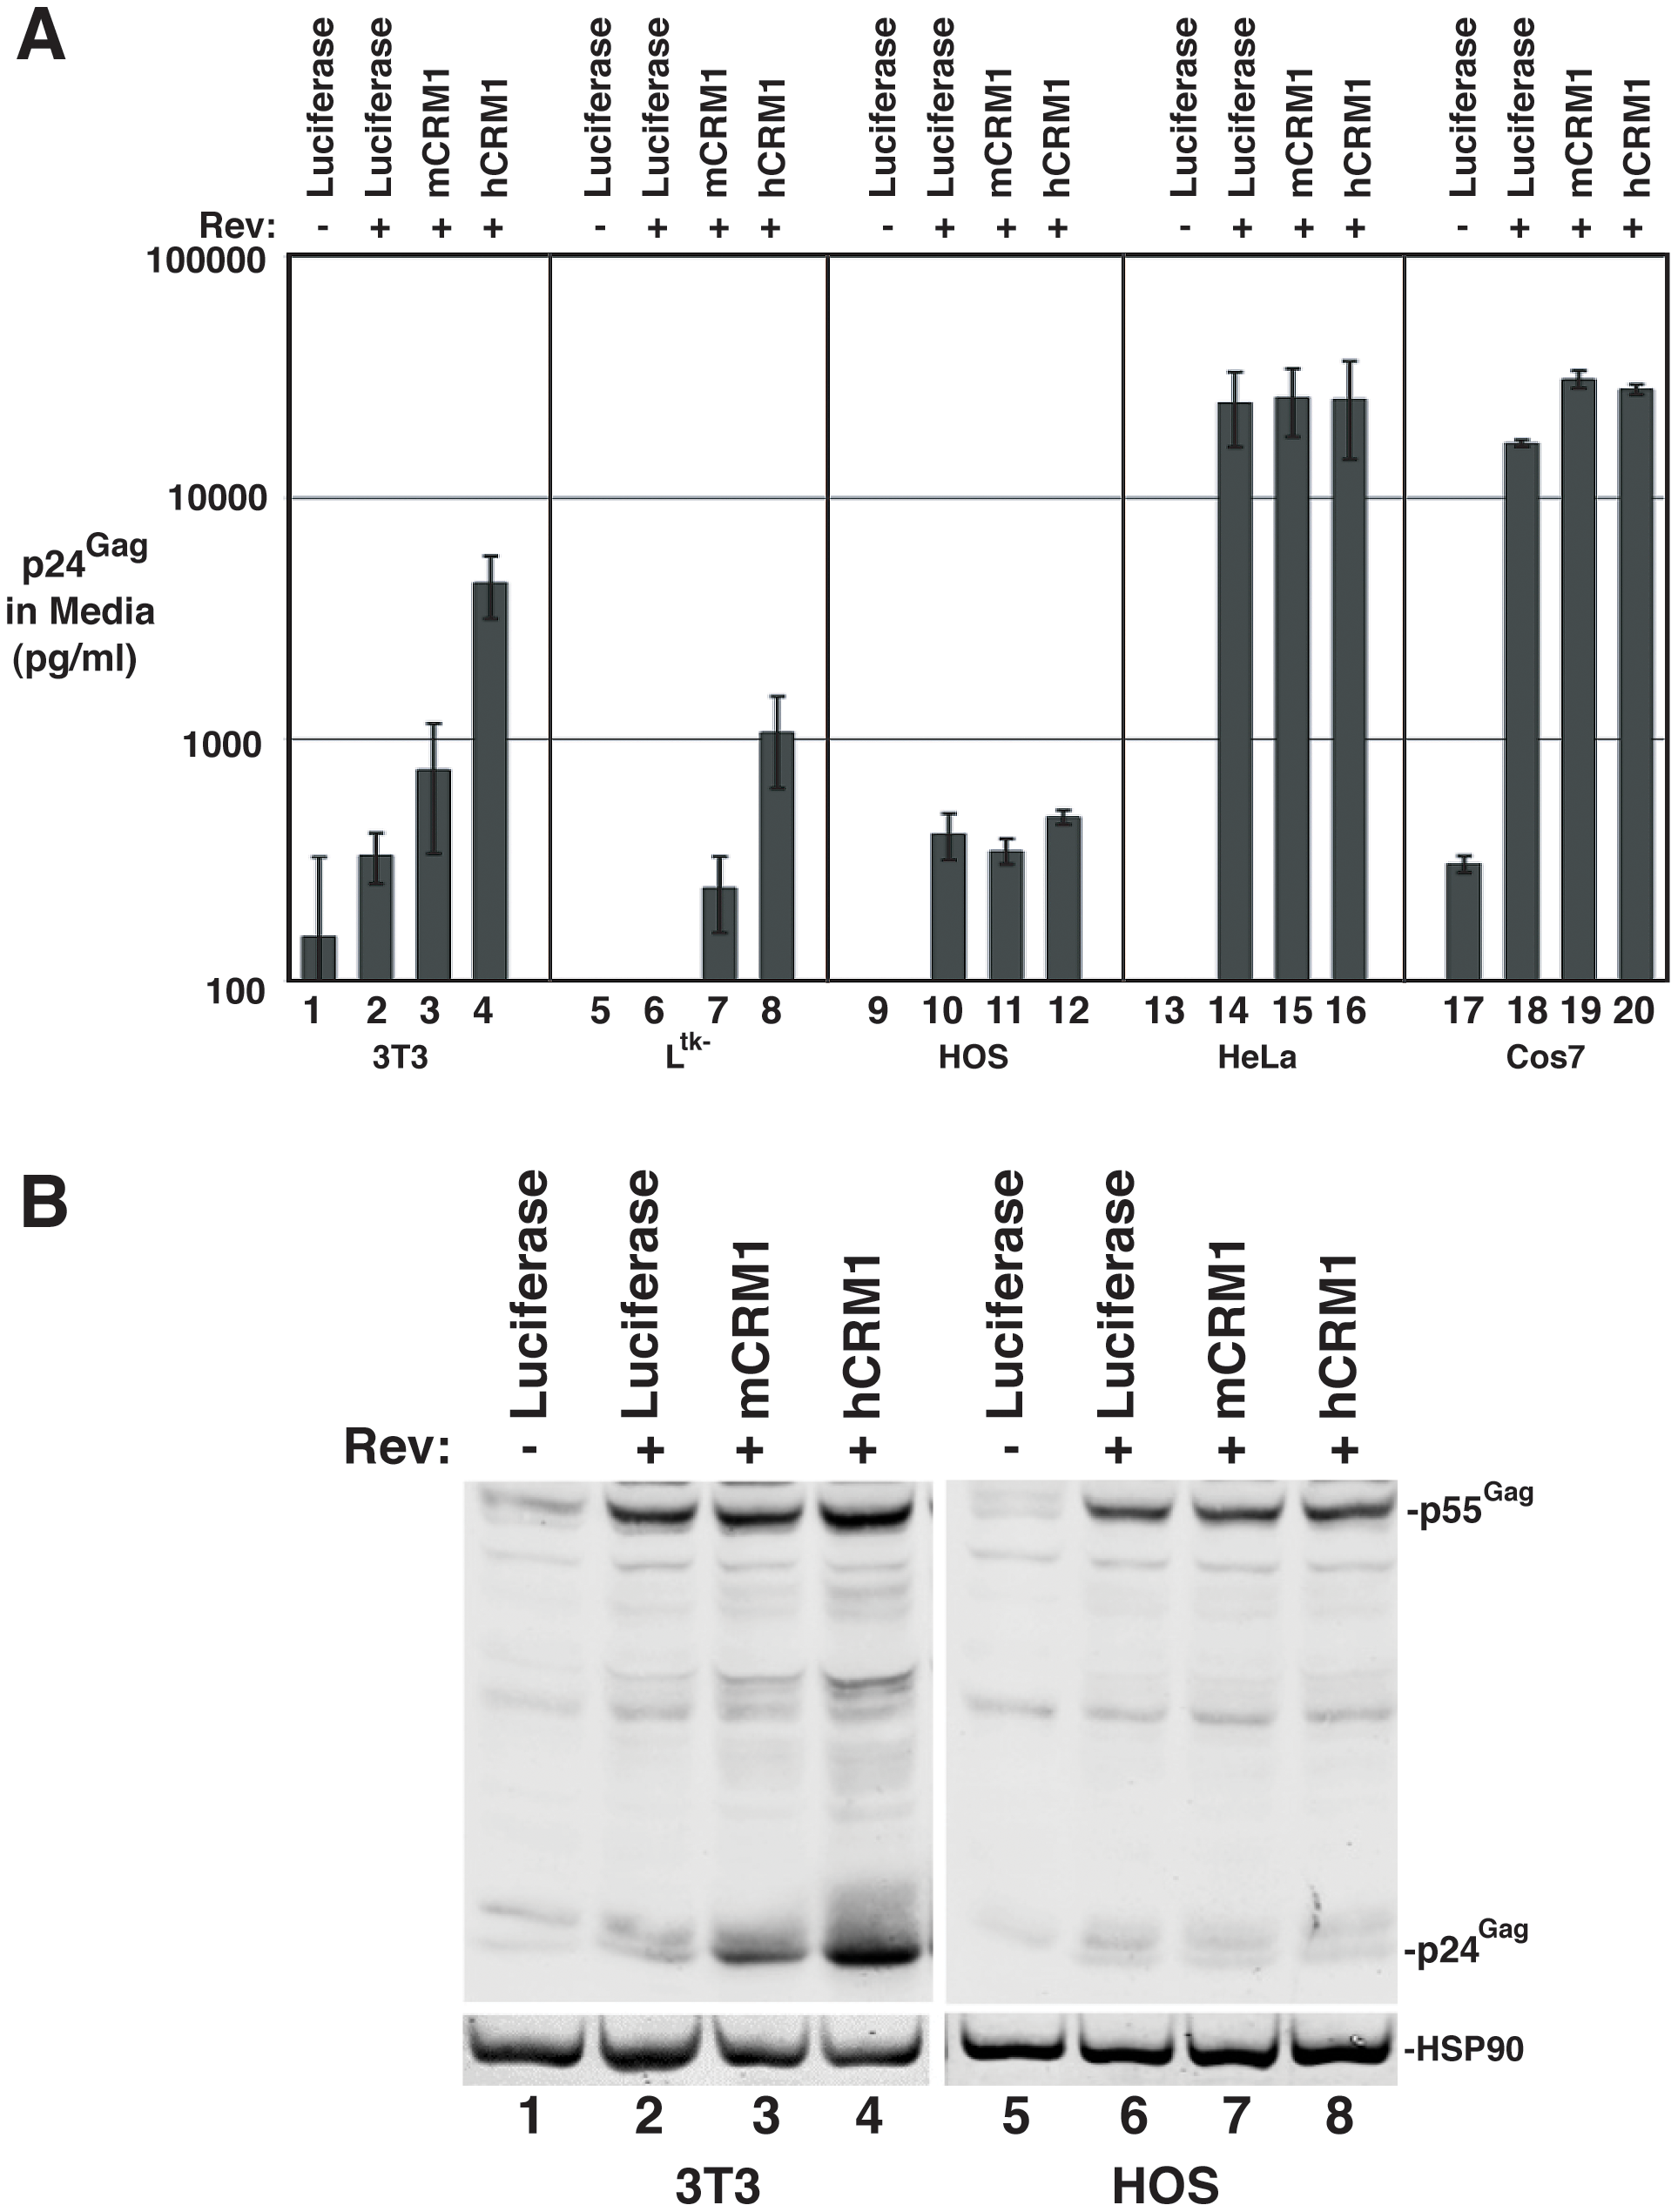 hCRM1 effects on HIV-1 VLP production are species-specific.